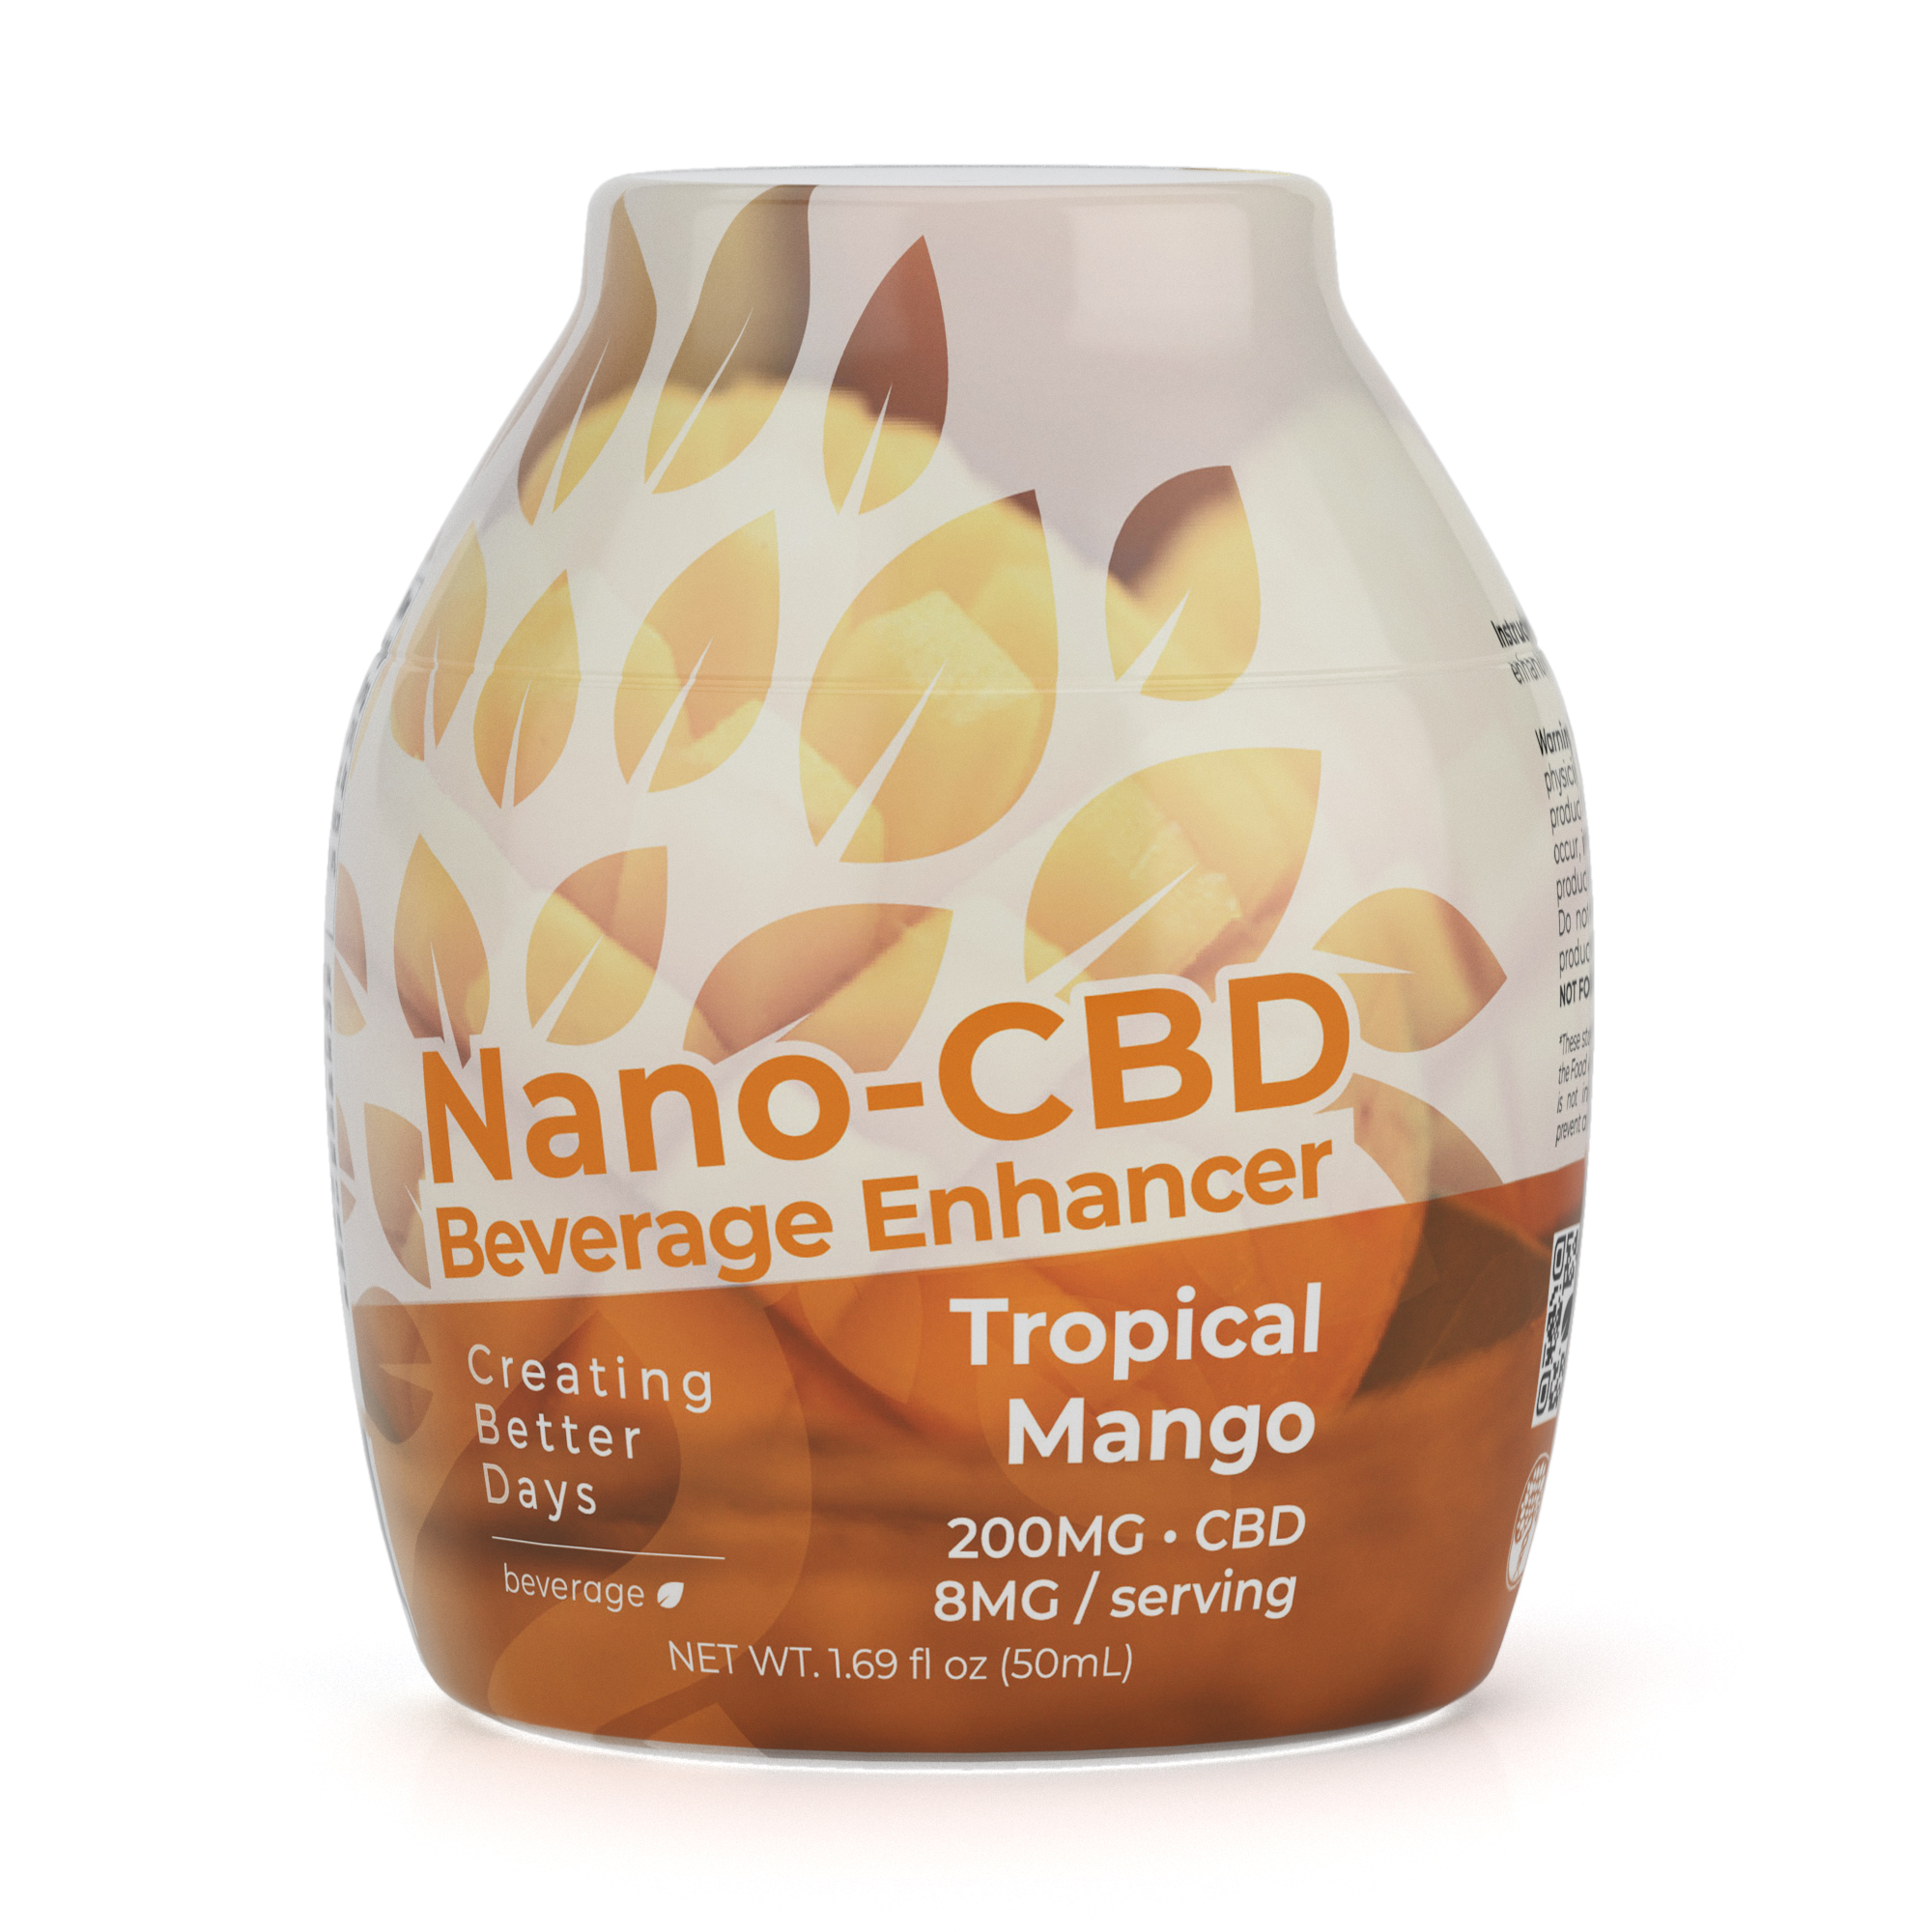 Nano-CBD Beverage Enhancer Tropical Mango 200MG 00058